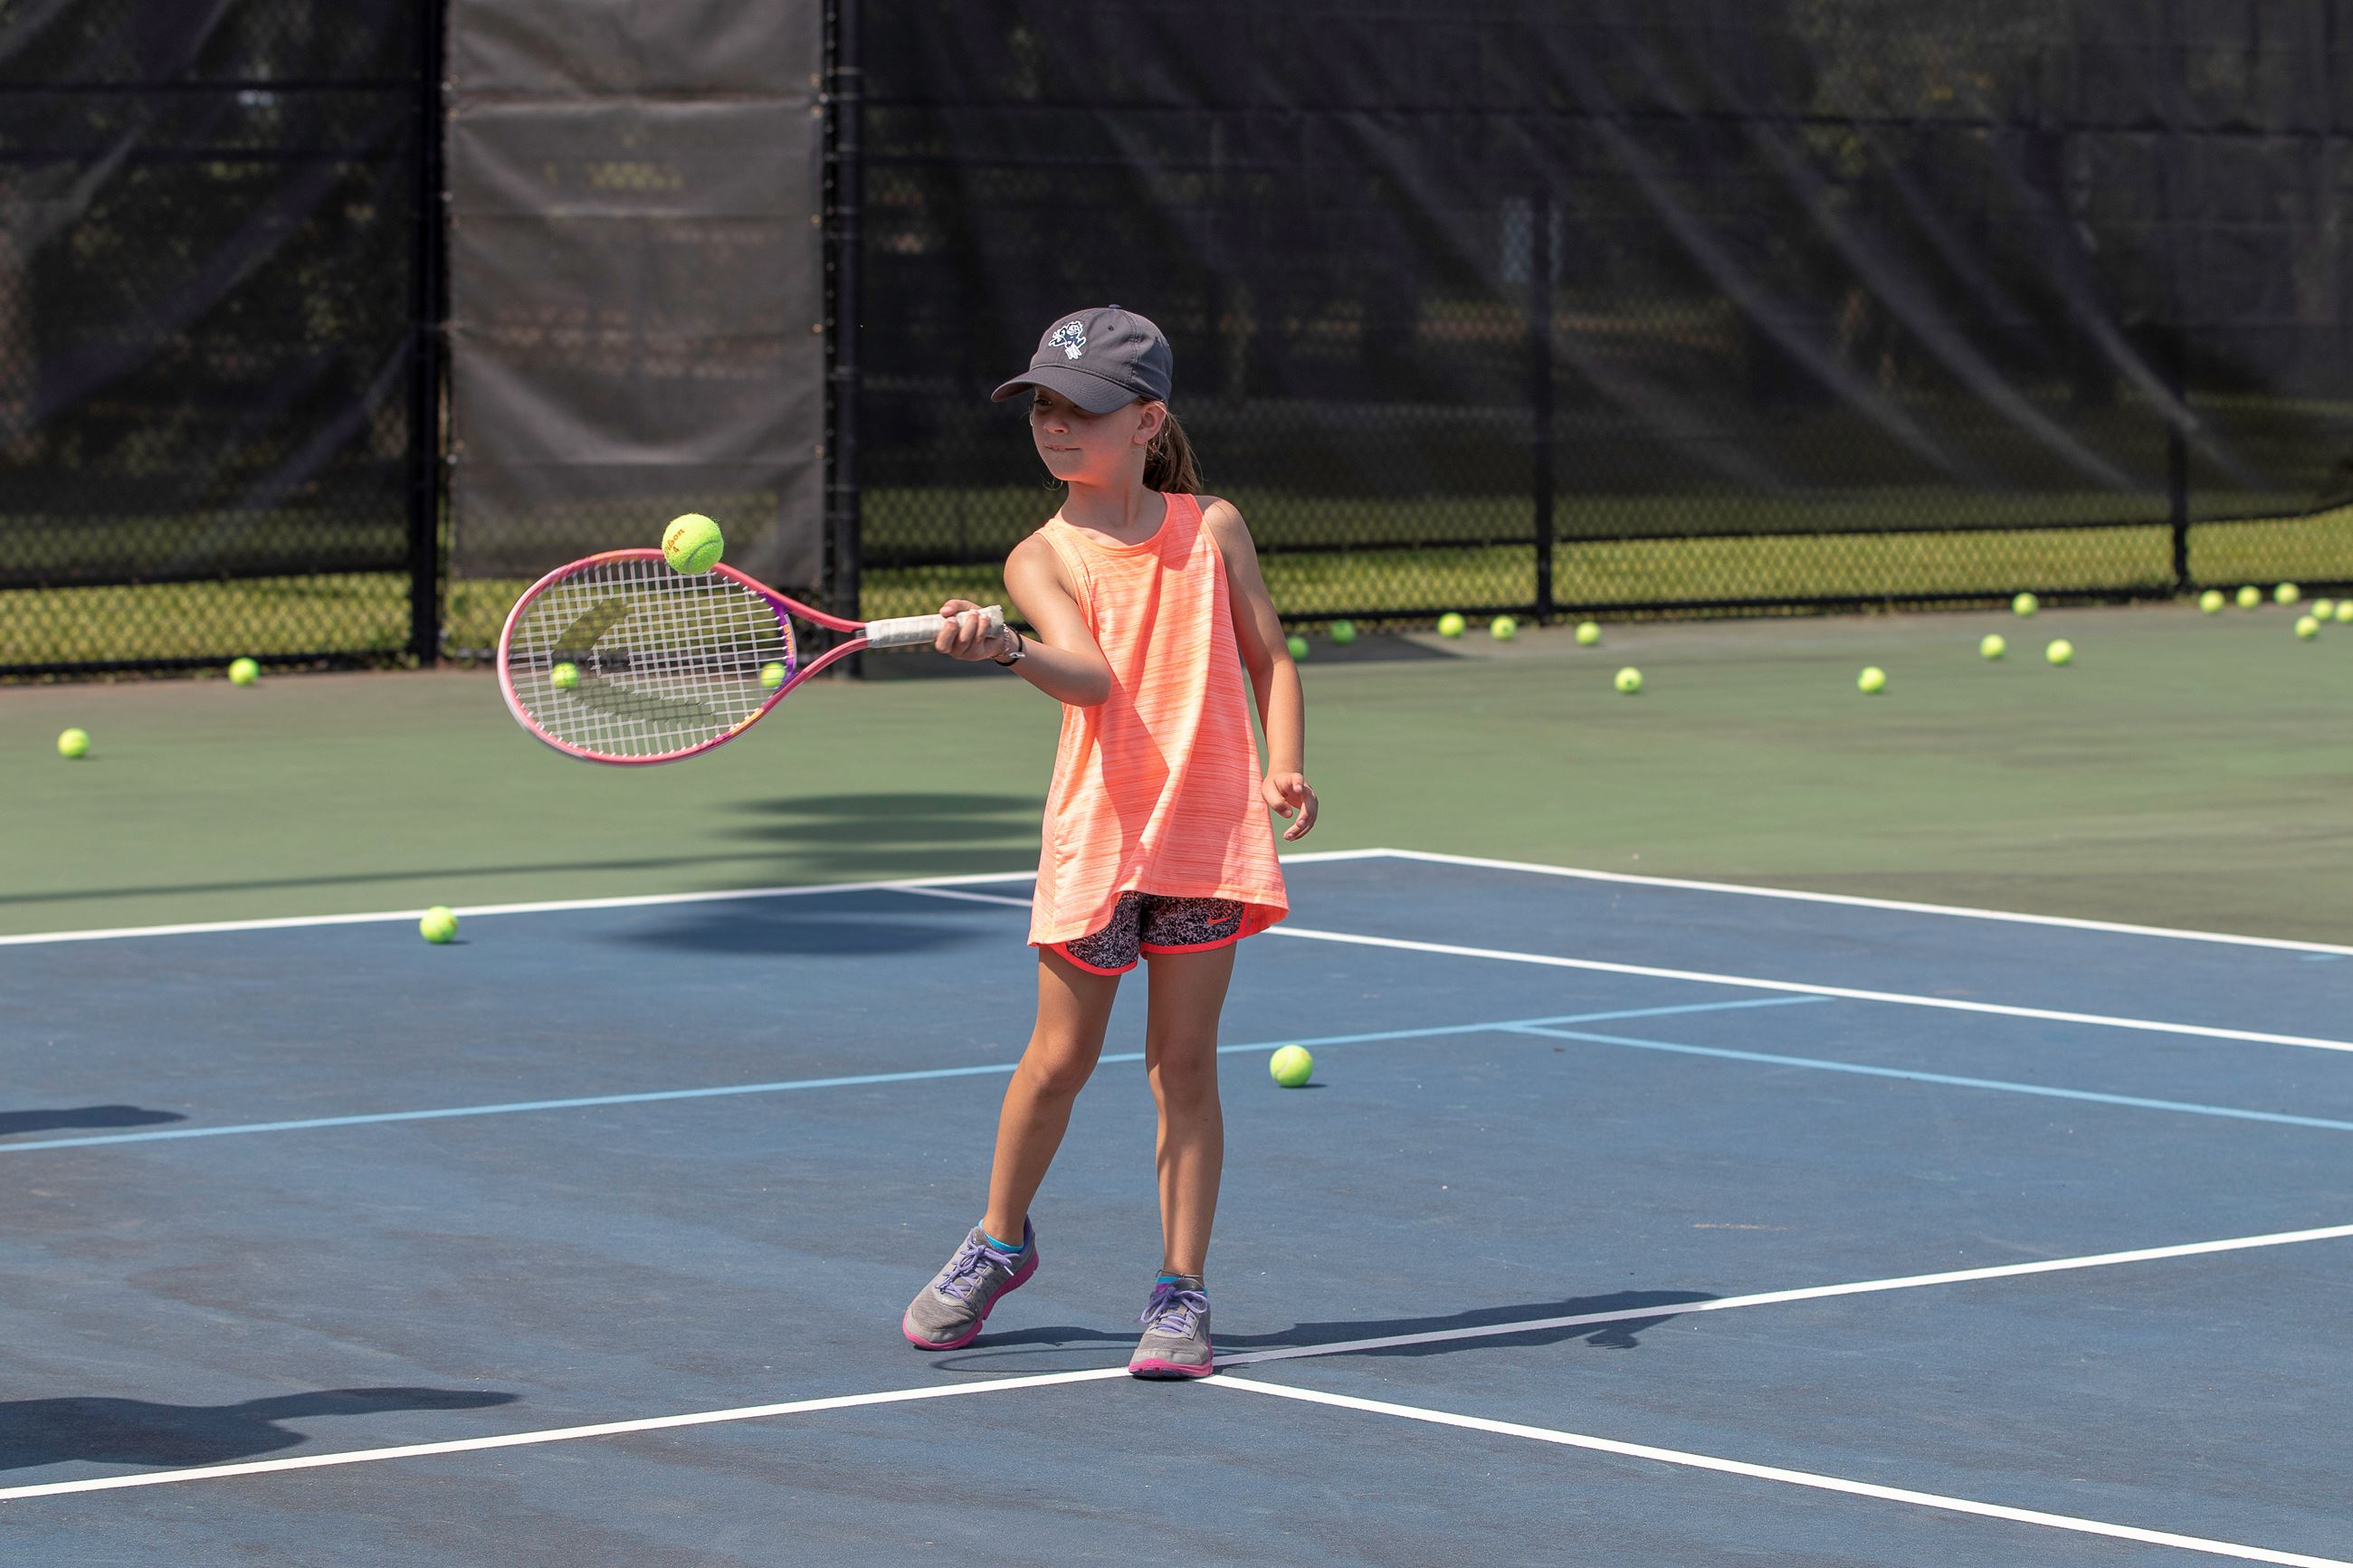 Image of child playing tennis.